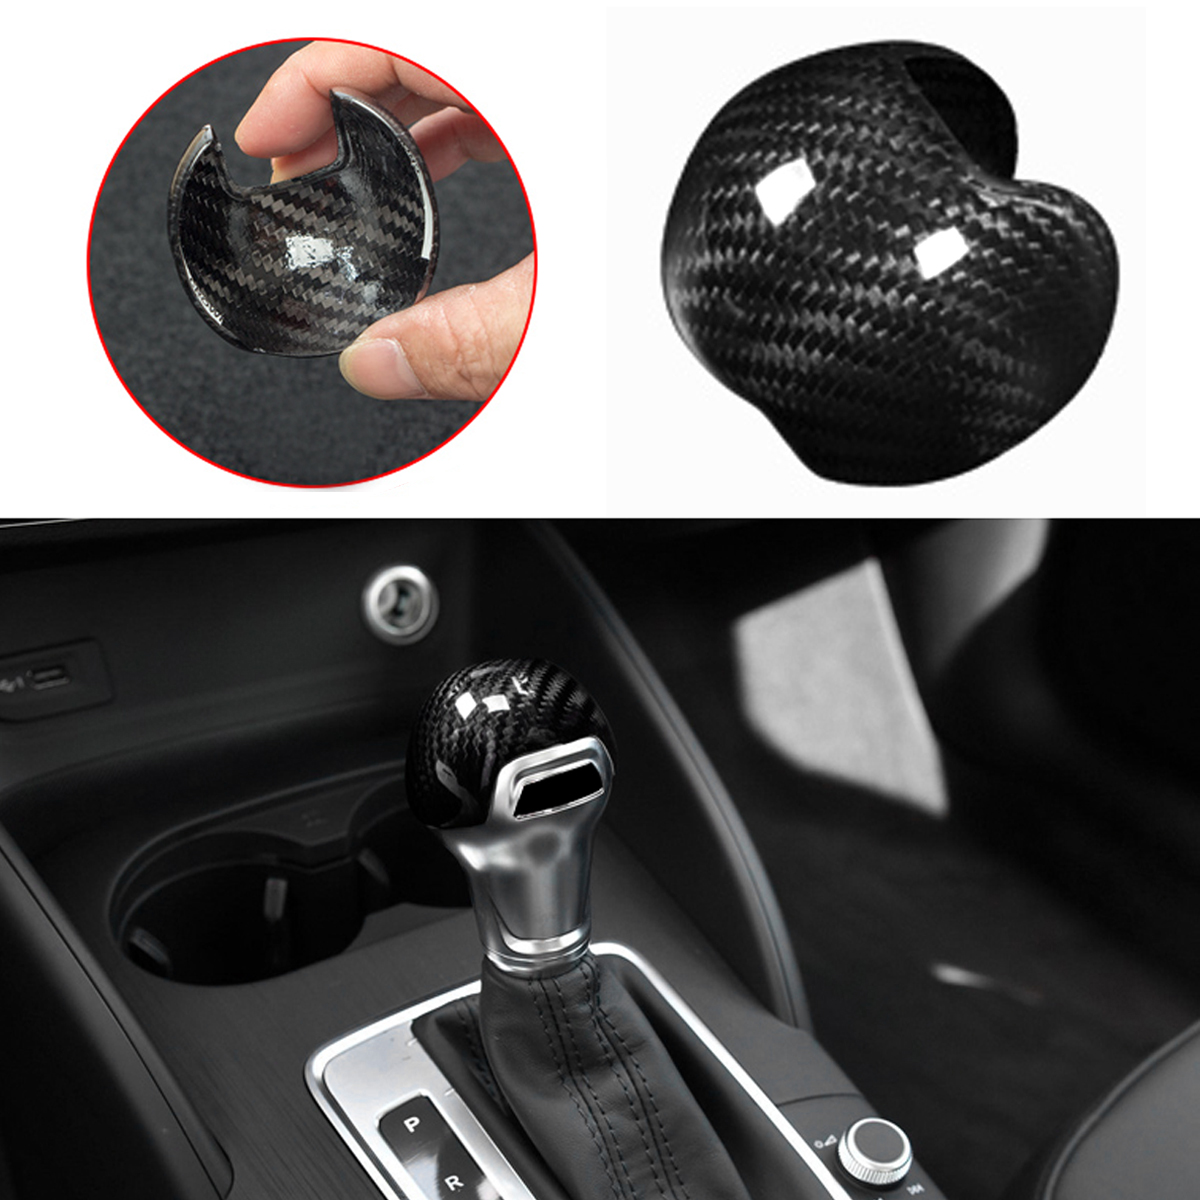 цена на New Car Carbon Fiber Gear Shifter Shift Knob Head Lever Stick Cap Trim Cover for AUDI A3 S3 8V 2013-2016 AT Automatic Trans Only